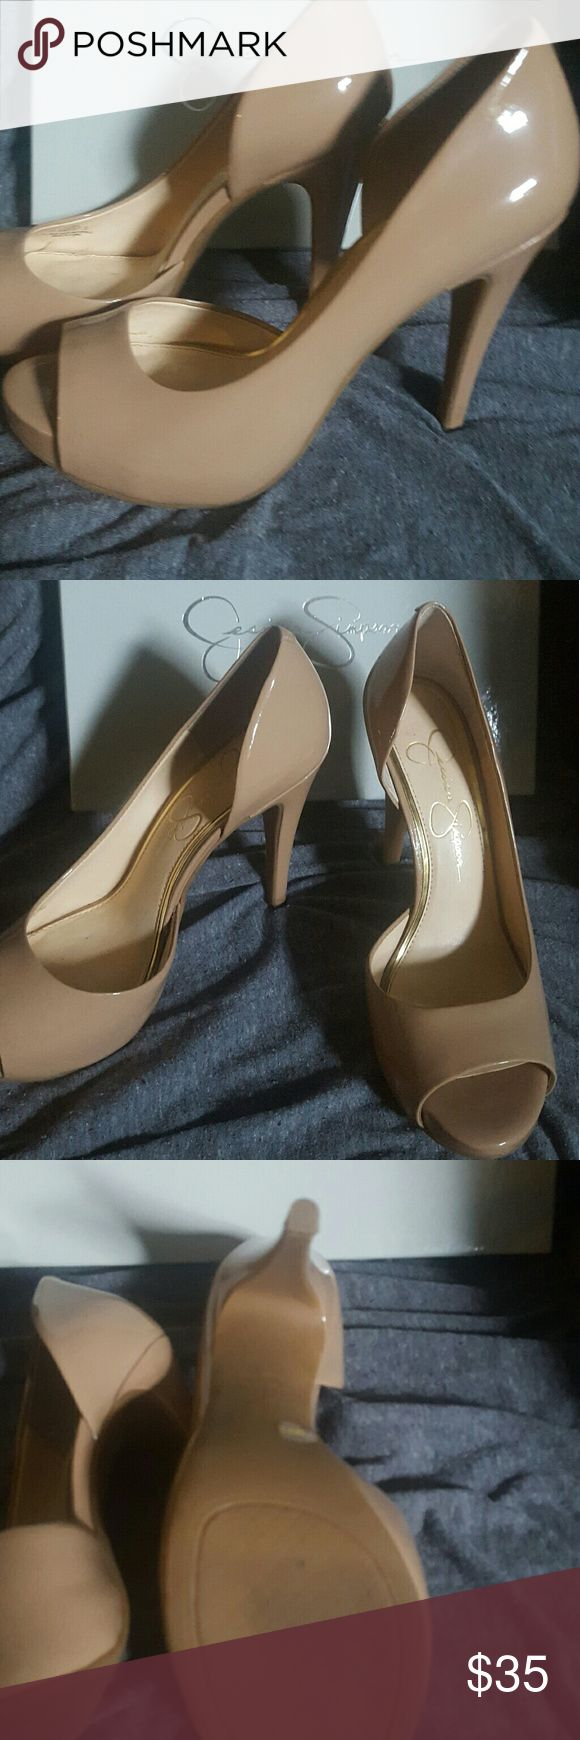 Jessica Simpson nude heels 7.5 Worn once for a wedding Jessica Simpson Shoes Heels